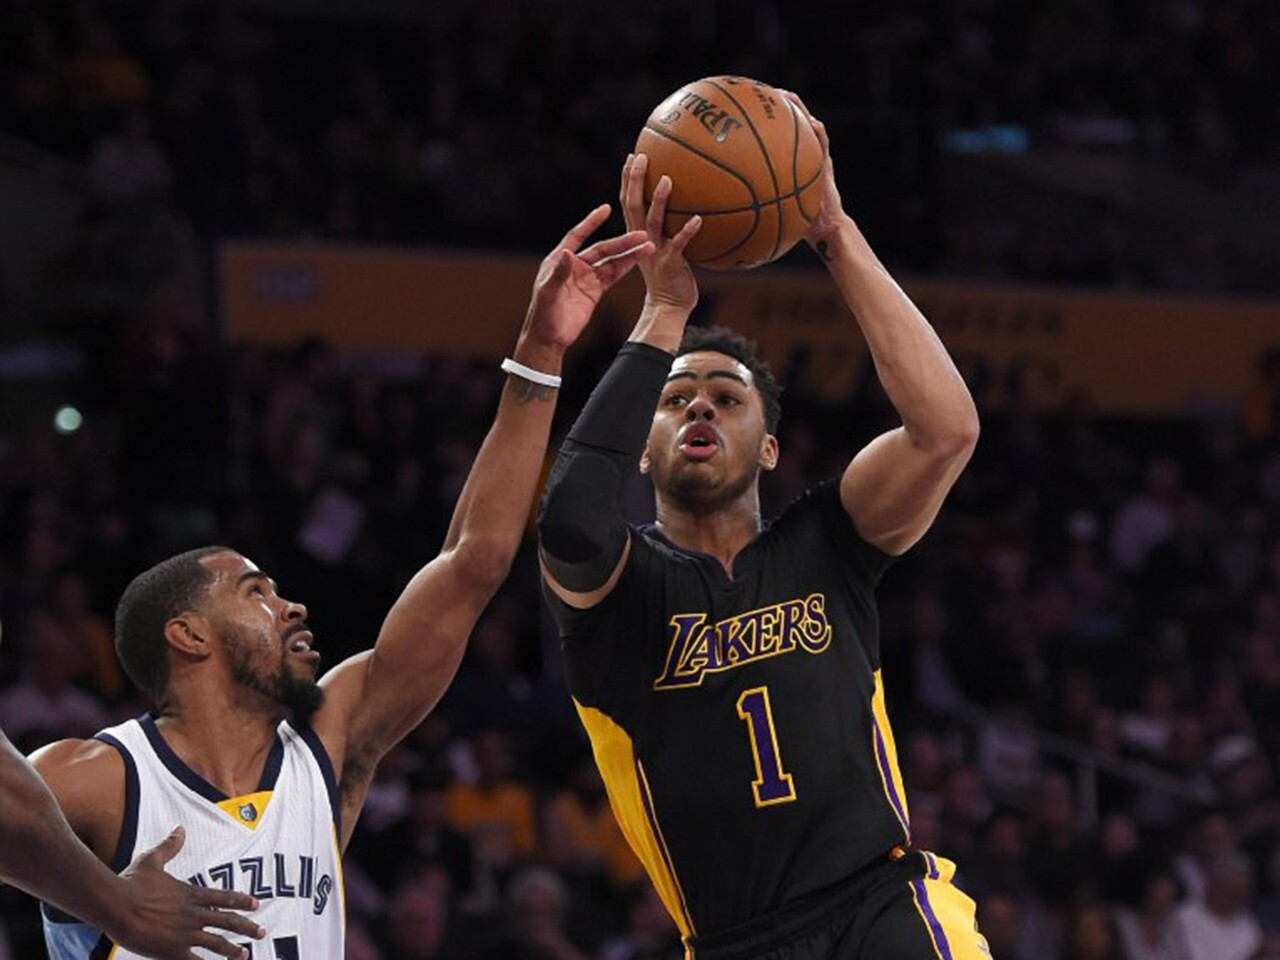 D'Angelo Russell drives to the basket against Memphis guard Mike Conley during the first half of the Lakers' 112-95 loss to the Grizzlies on Feb. 26 at Staples Center.